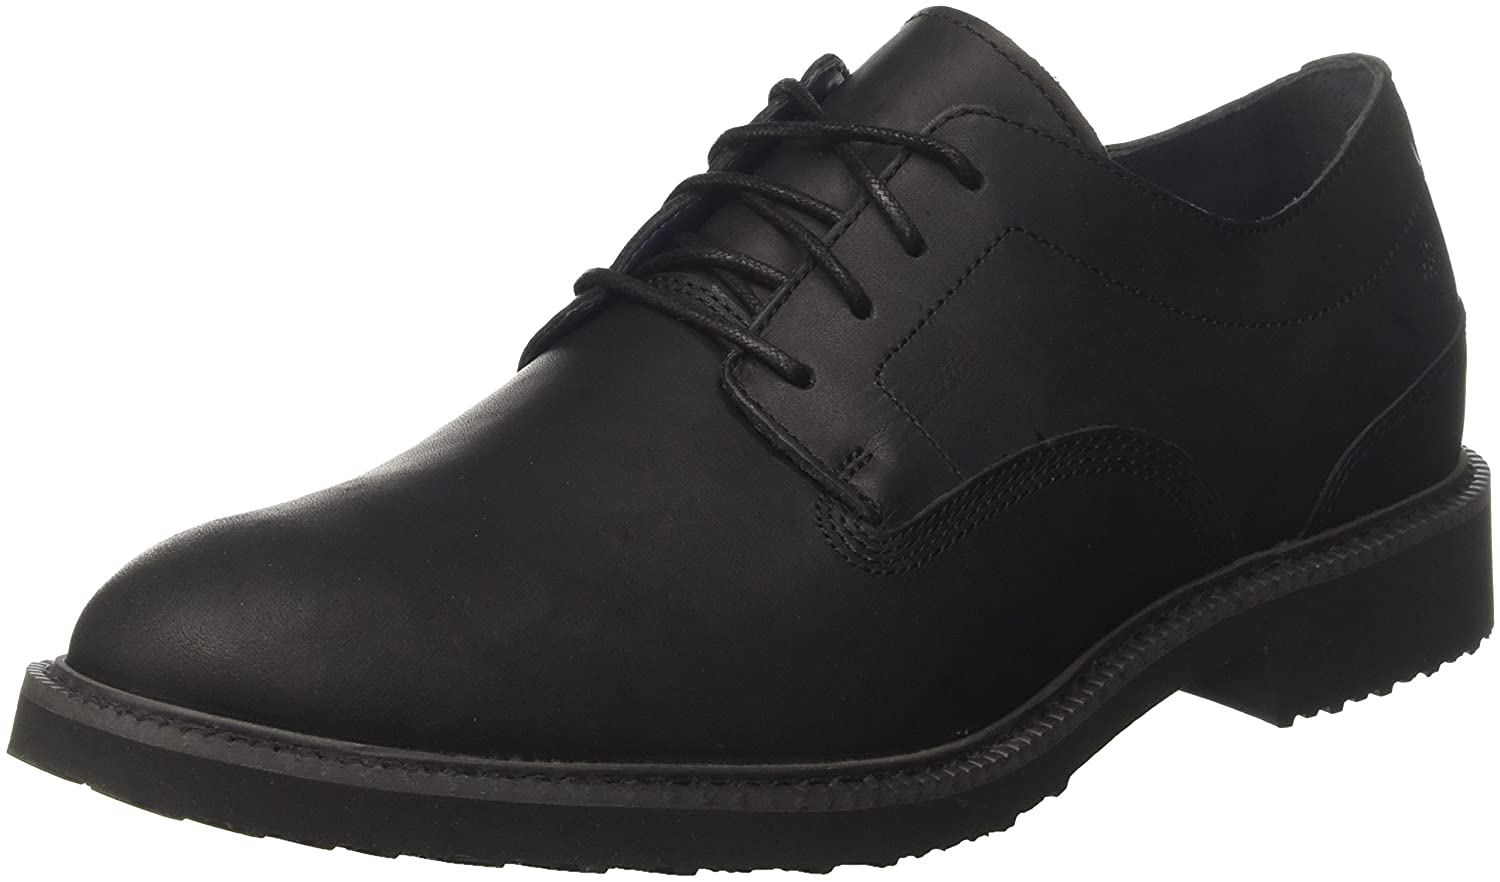 TALLA 40 EU. Timberland Brook Park Light, Zapatos de Cordones Oxford para Hombre